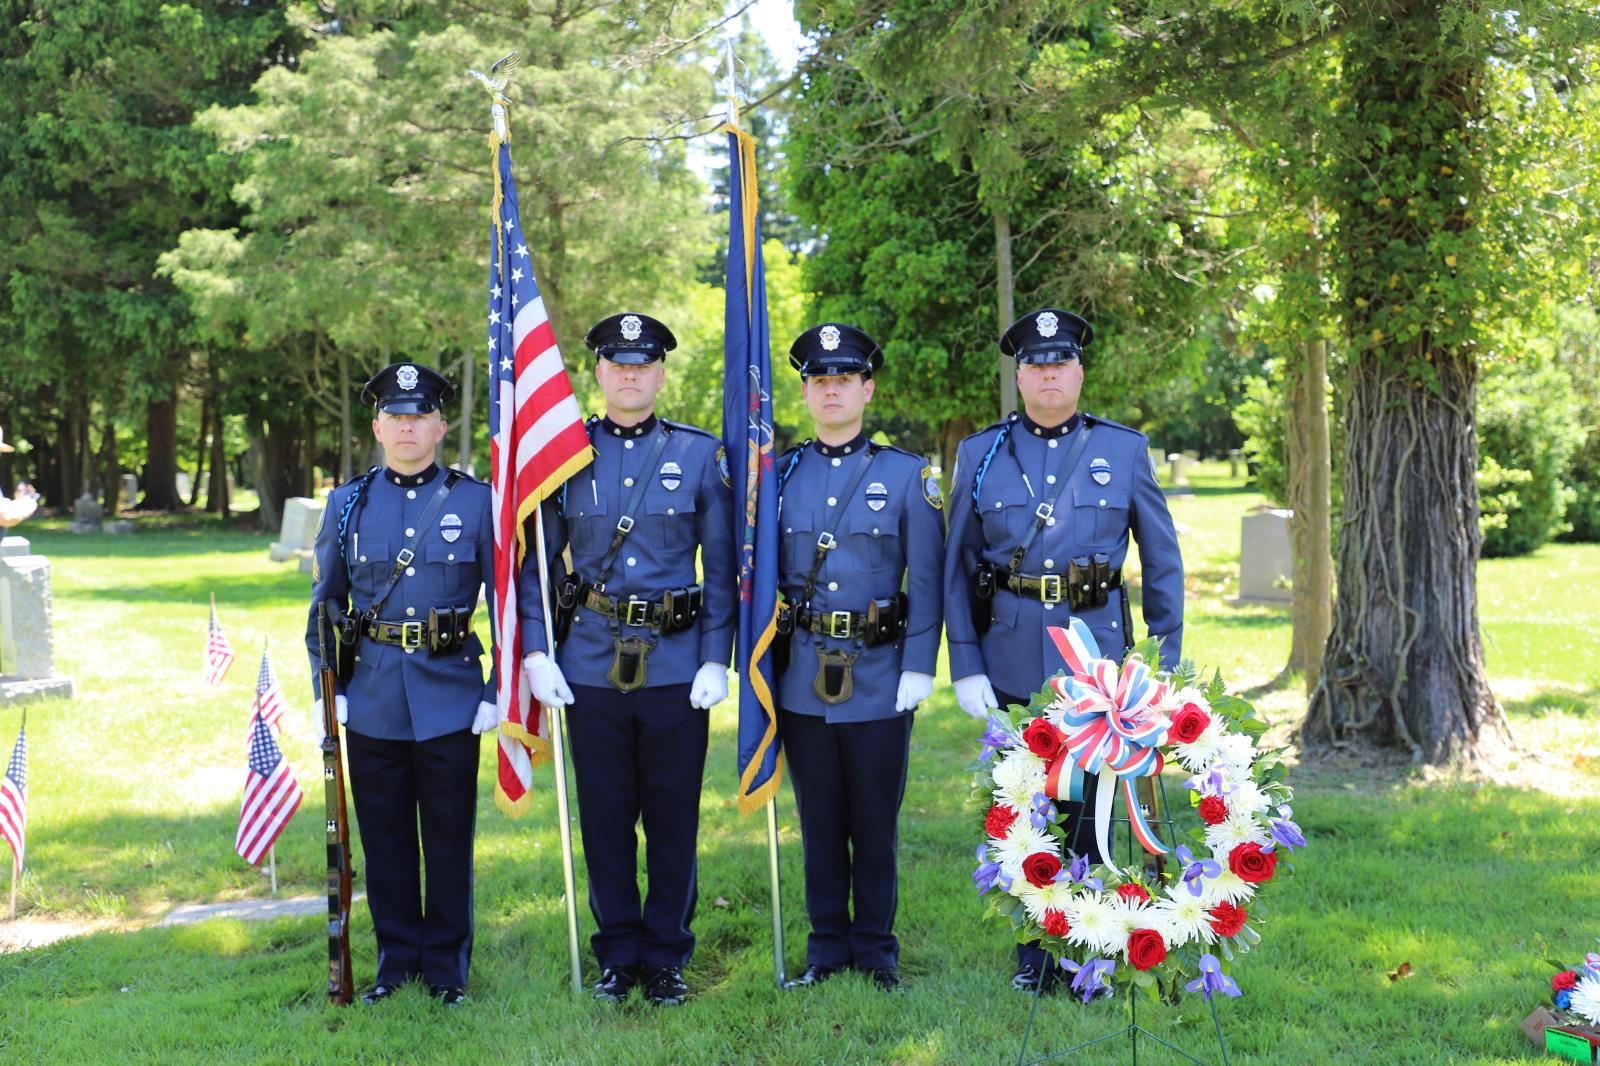 Abington Police Department Honor Guard on Memorial Day